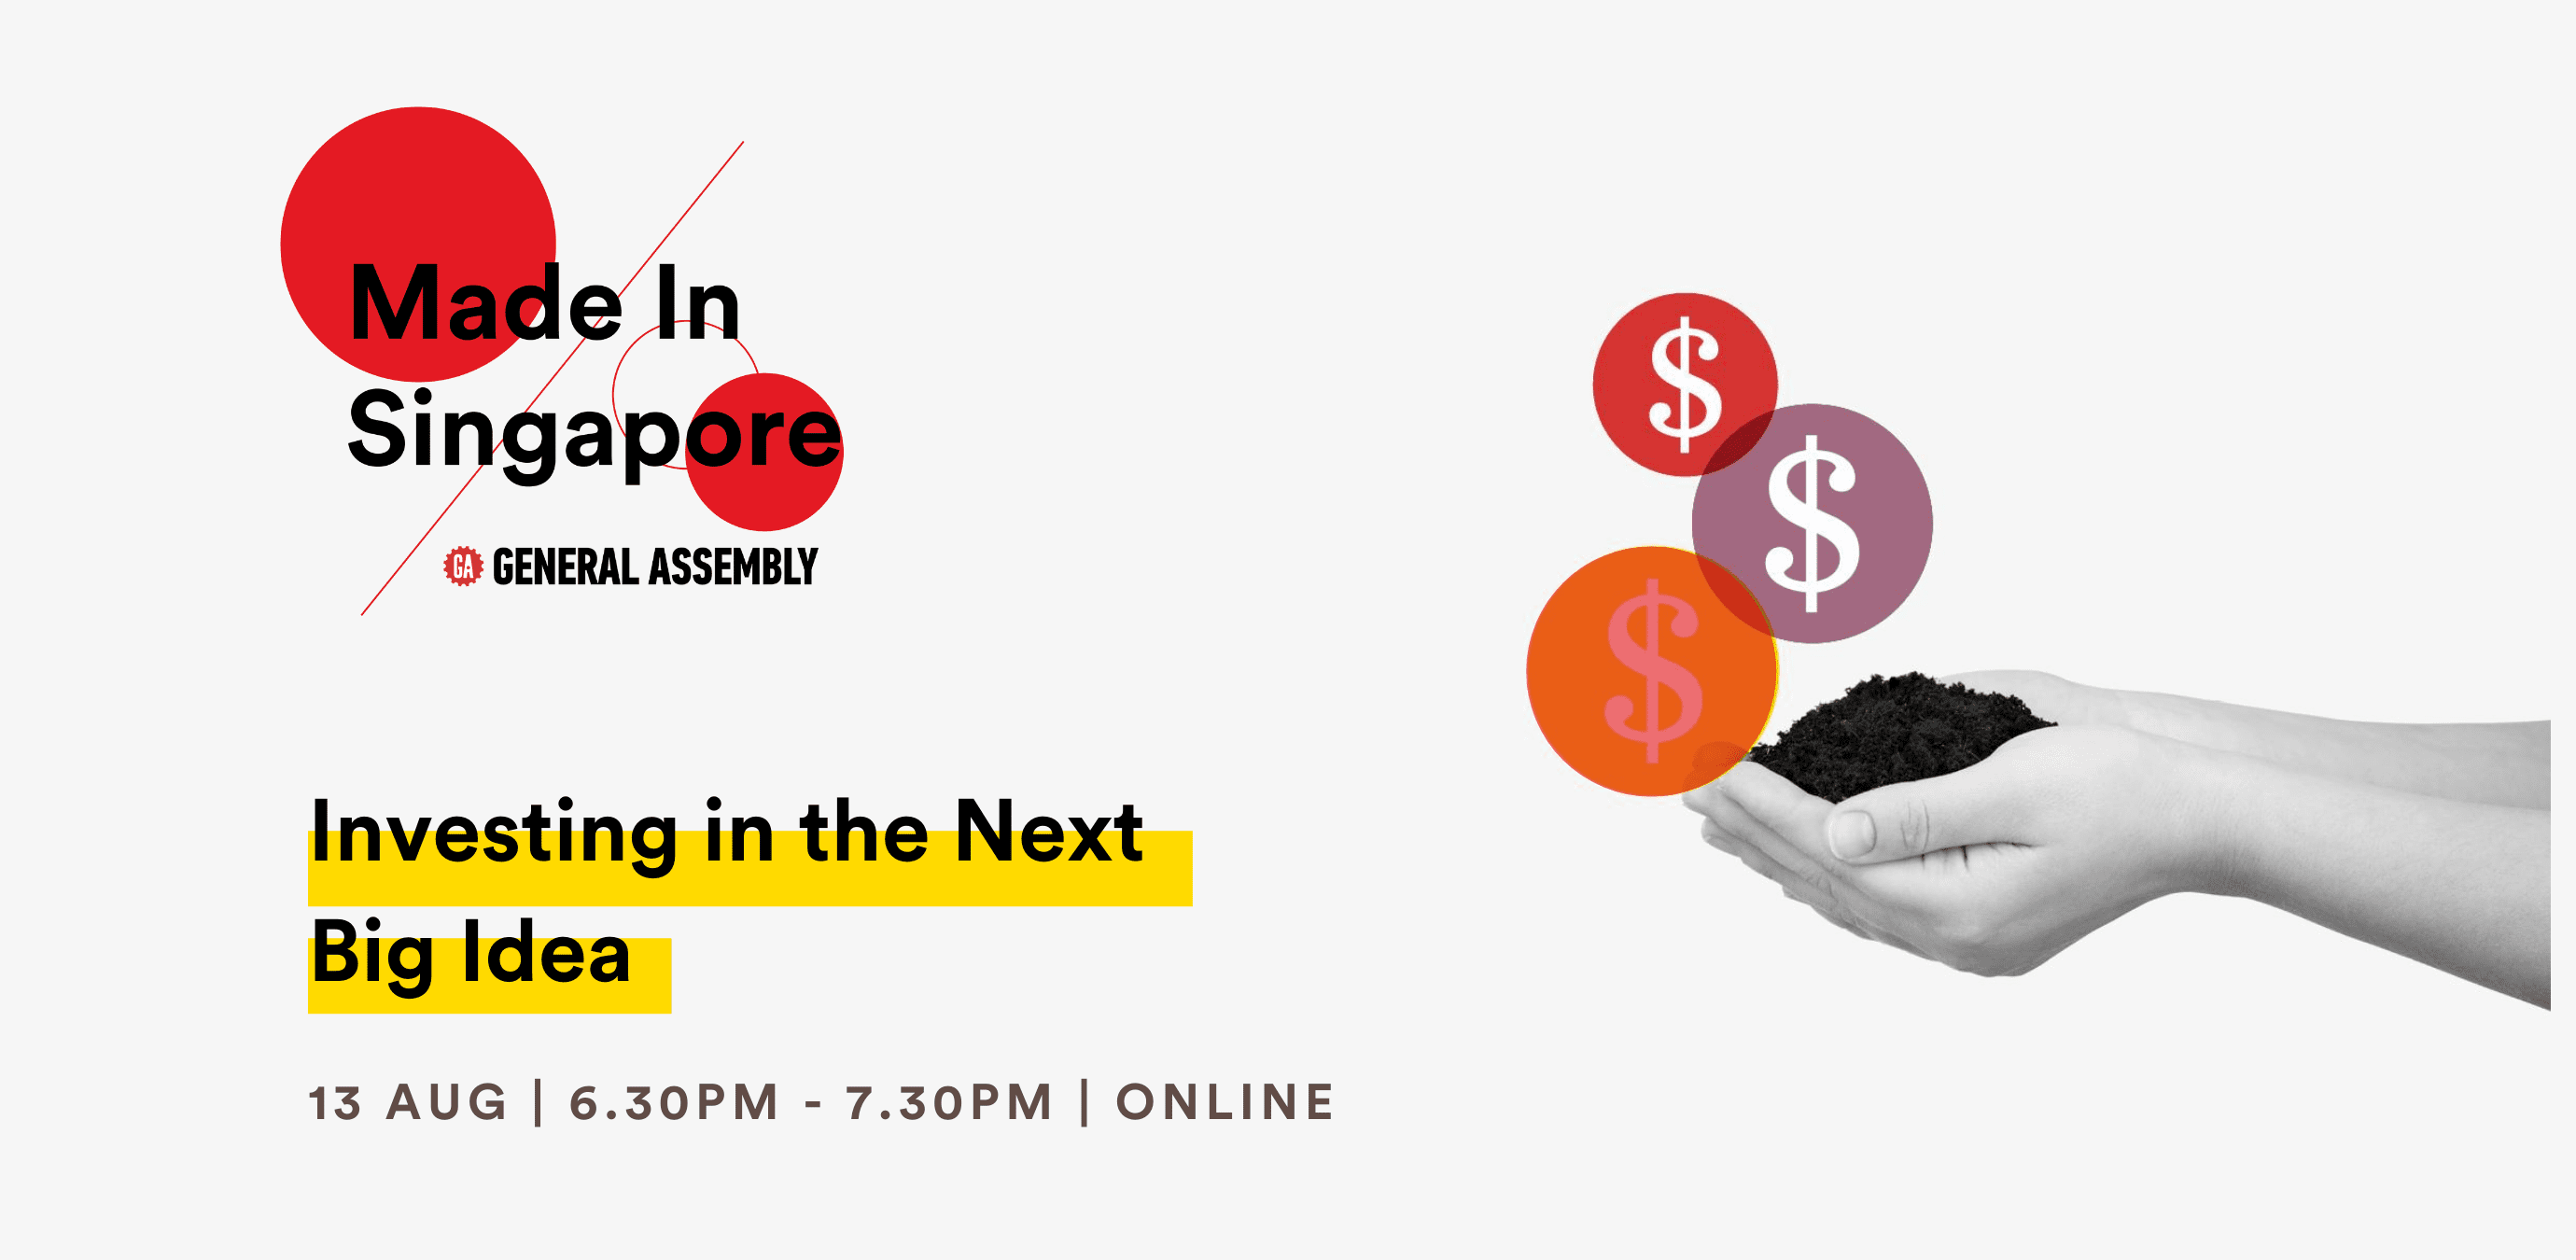 Made In Singapore: Investing in the Next Big Idea